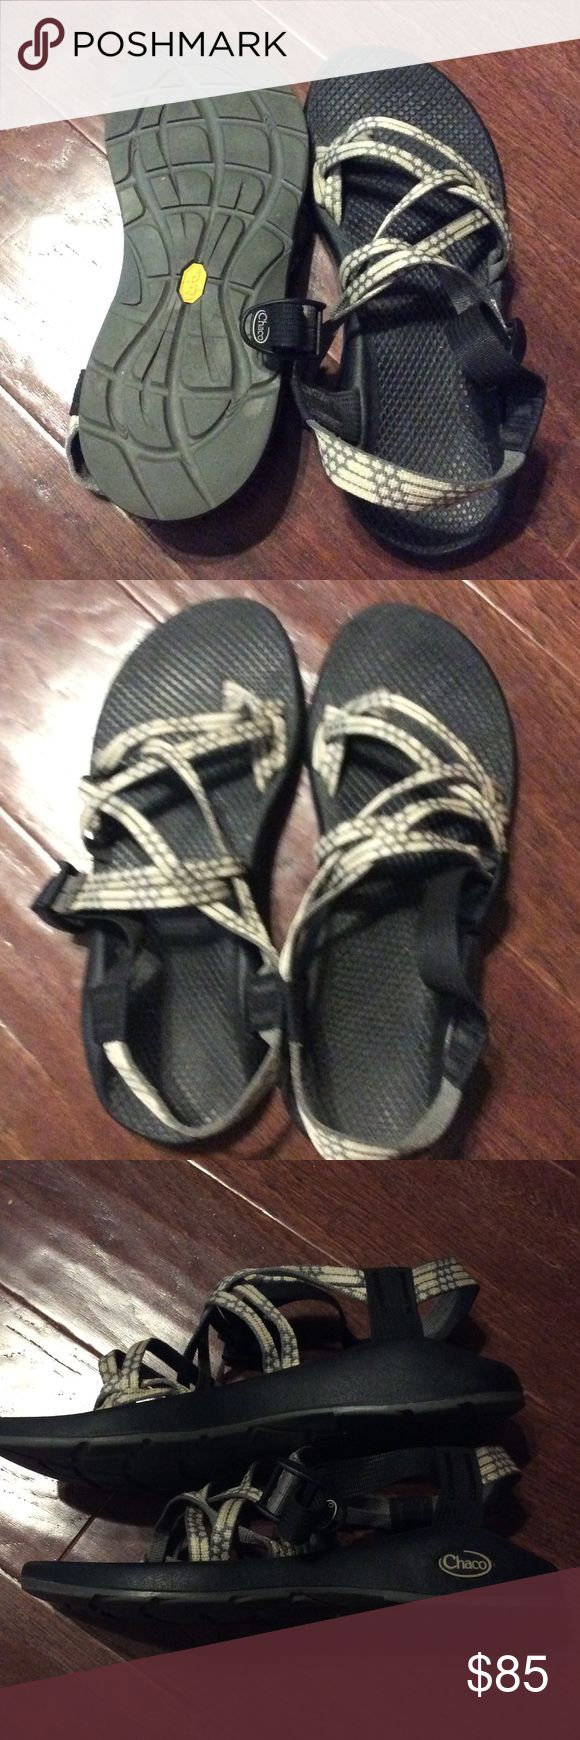 Women's Chaco Sandals in color light beam These sandals have only been worn twice and have been properly taken care of. I am selling because I don't get much use out of them and hardly wore them since the time I've had them. No trades please. Chacos Shoes Sandals